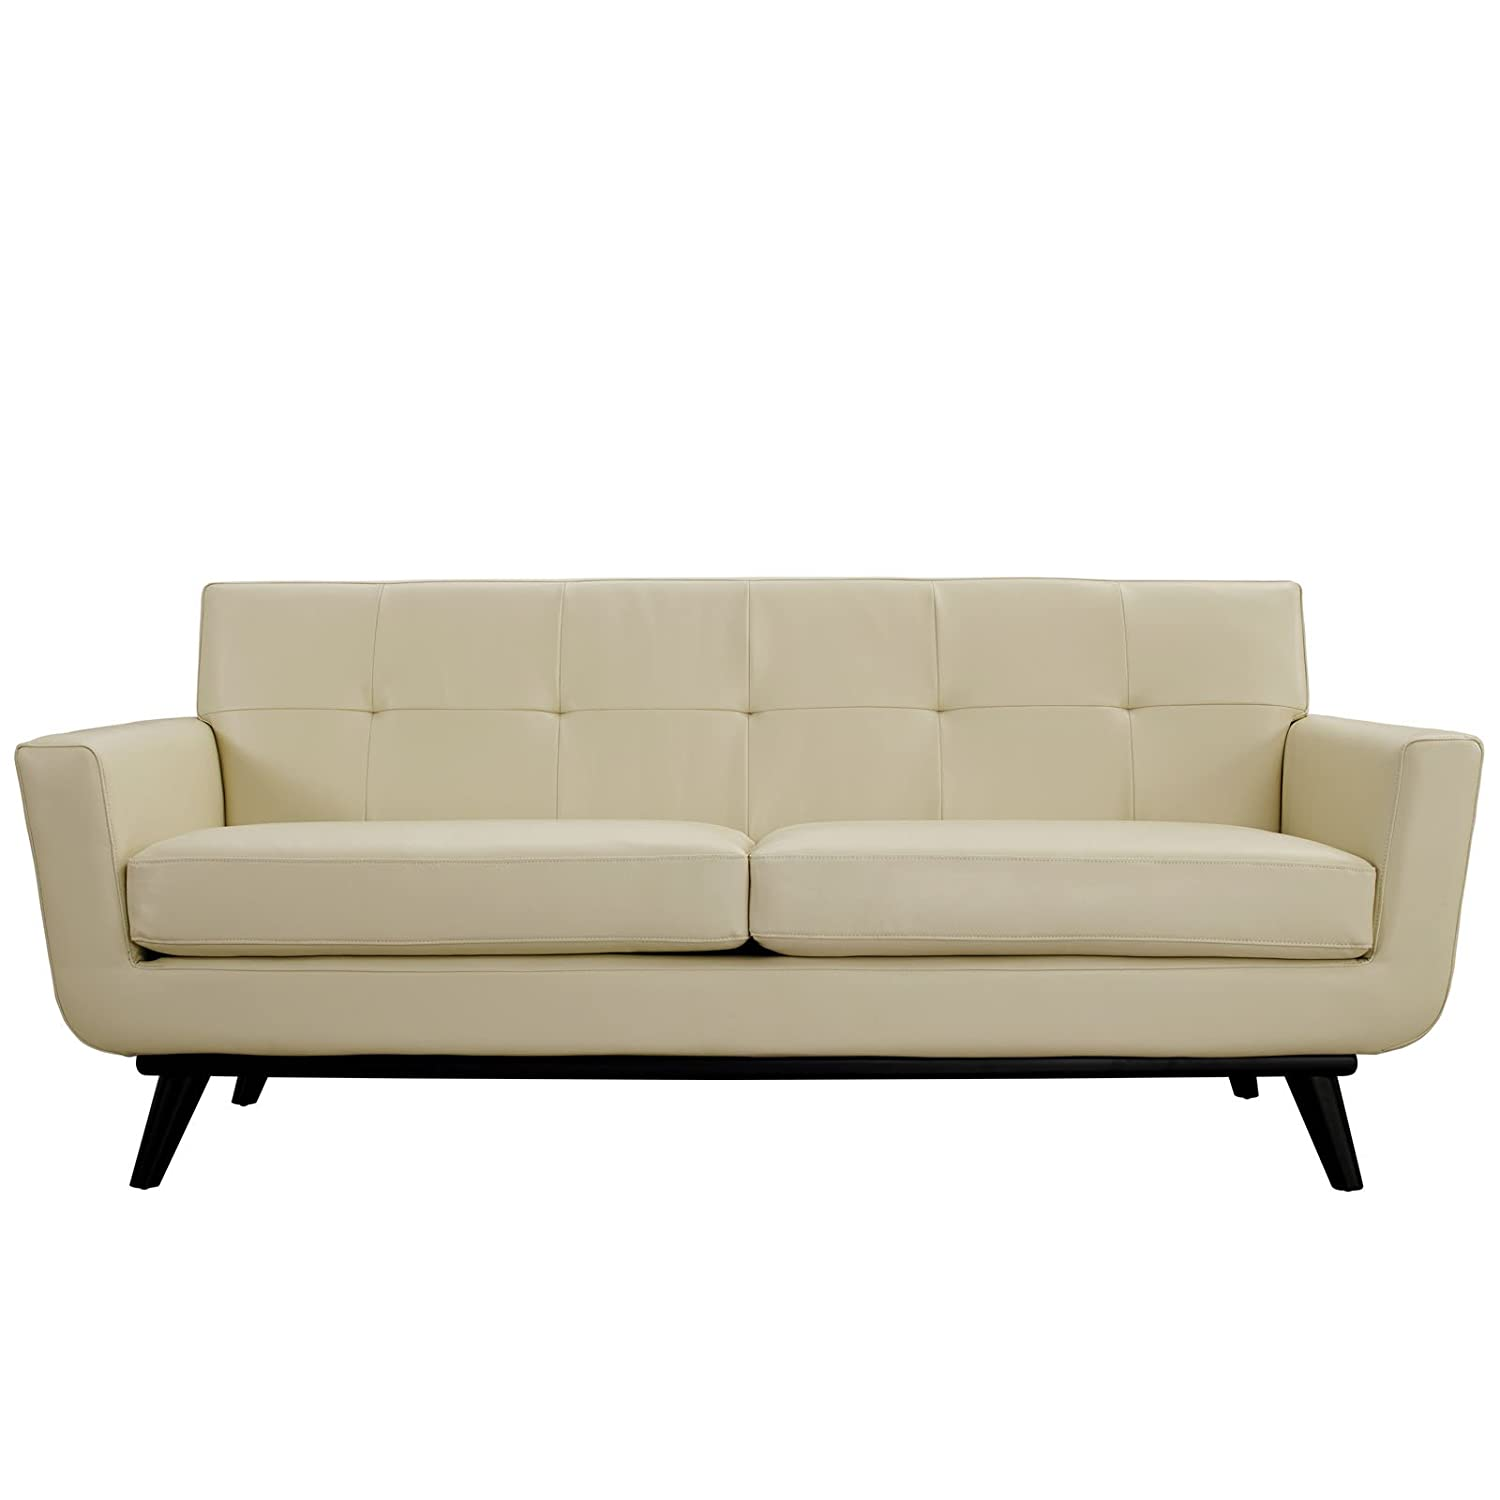 room leather loveseat recliner elegant living sofa idea white and your awesome for furniture decor cream